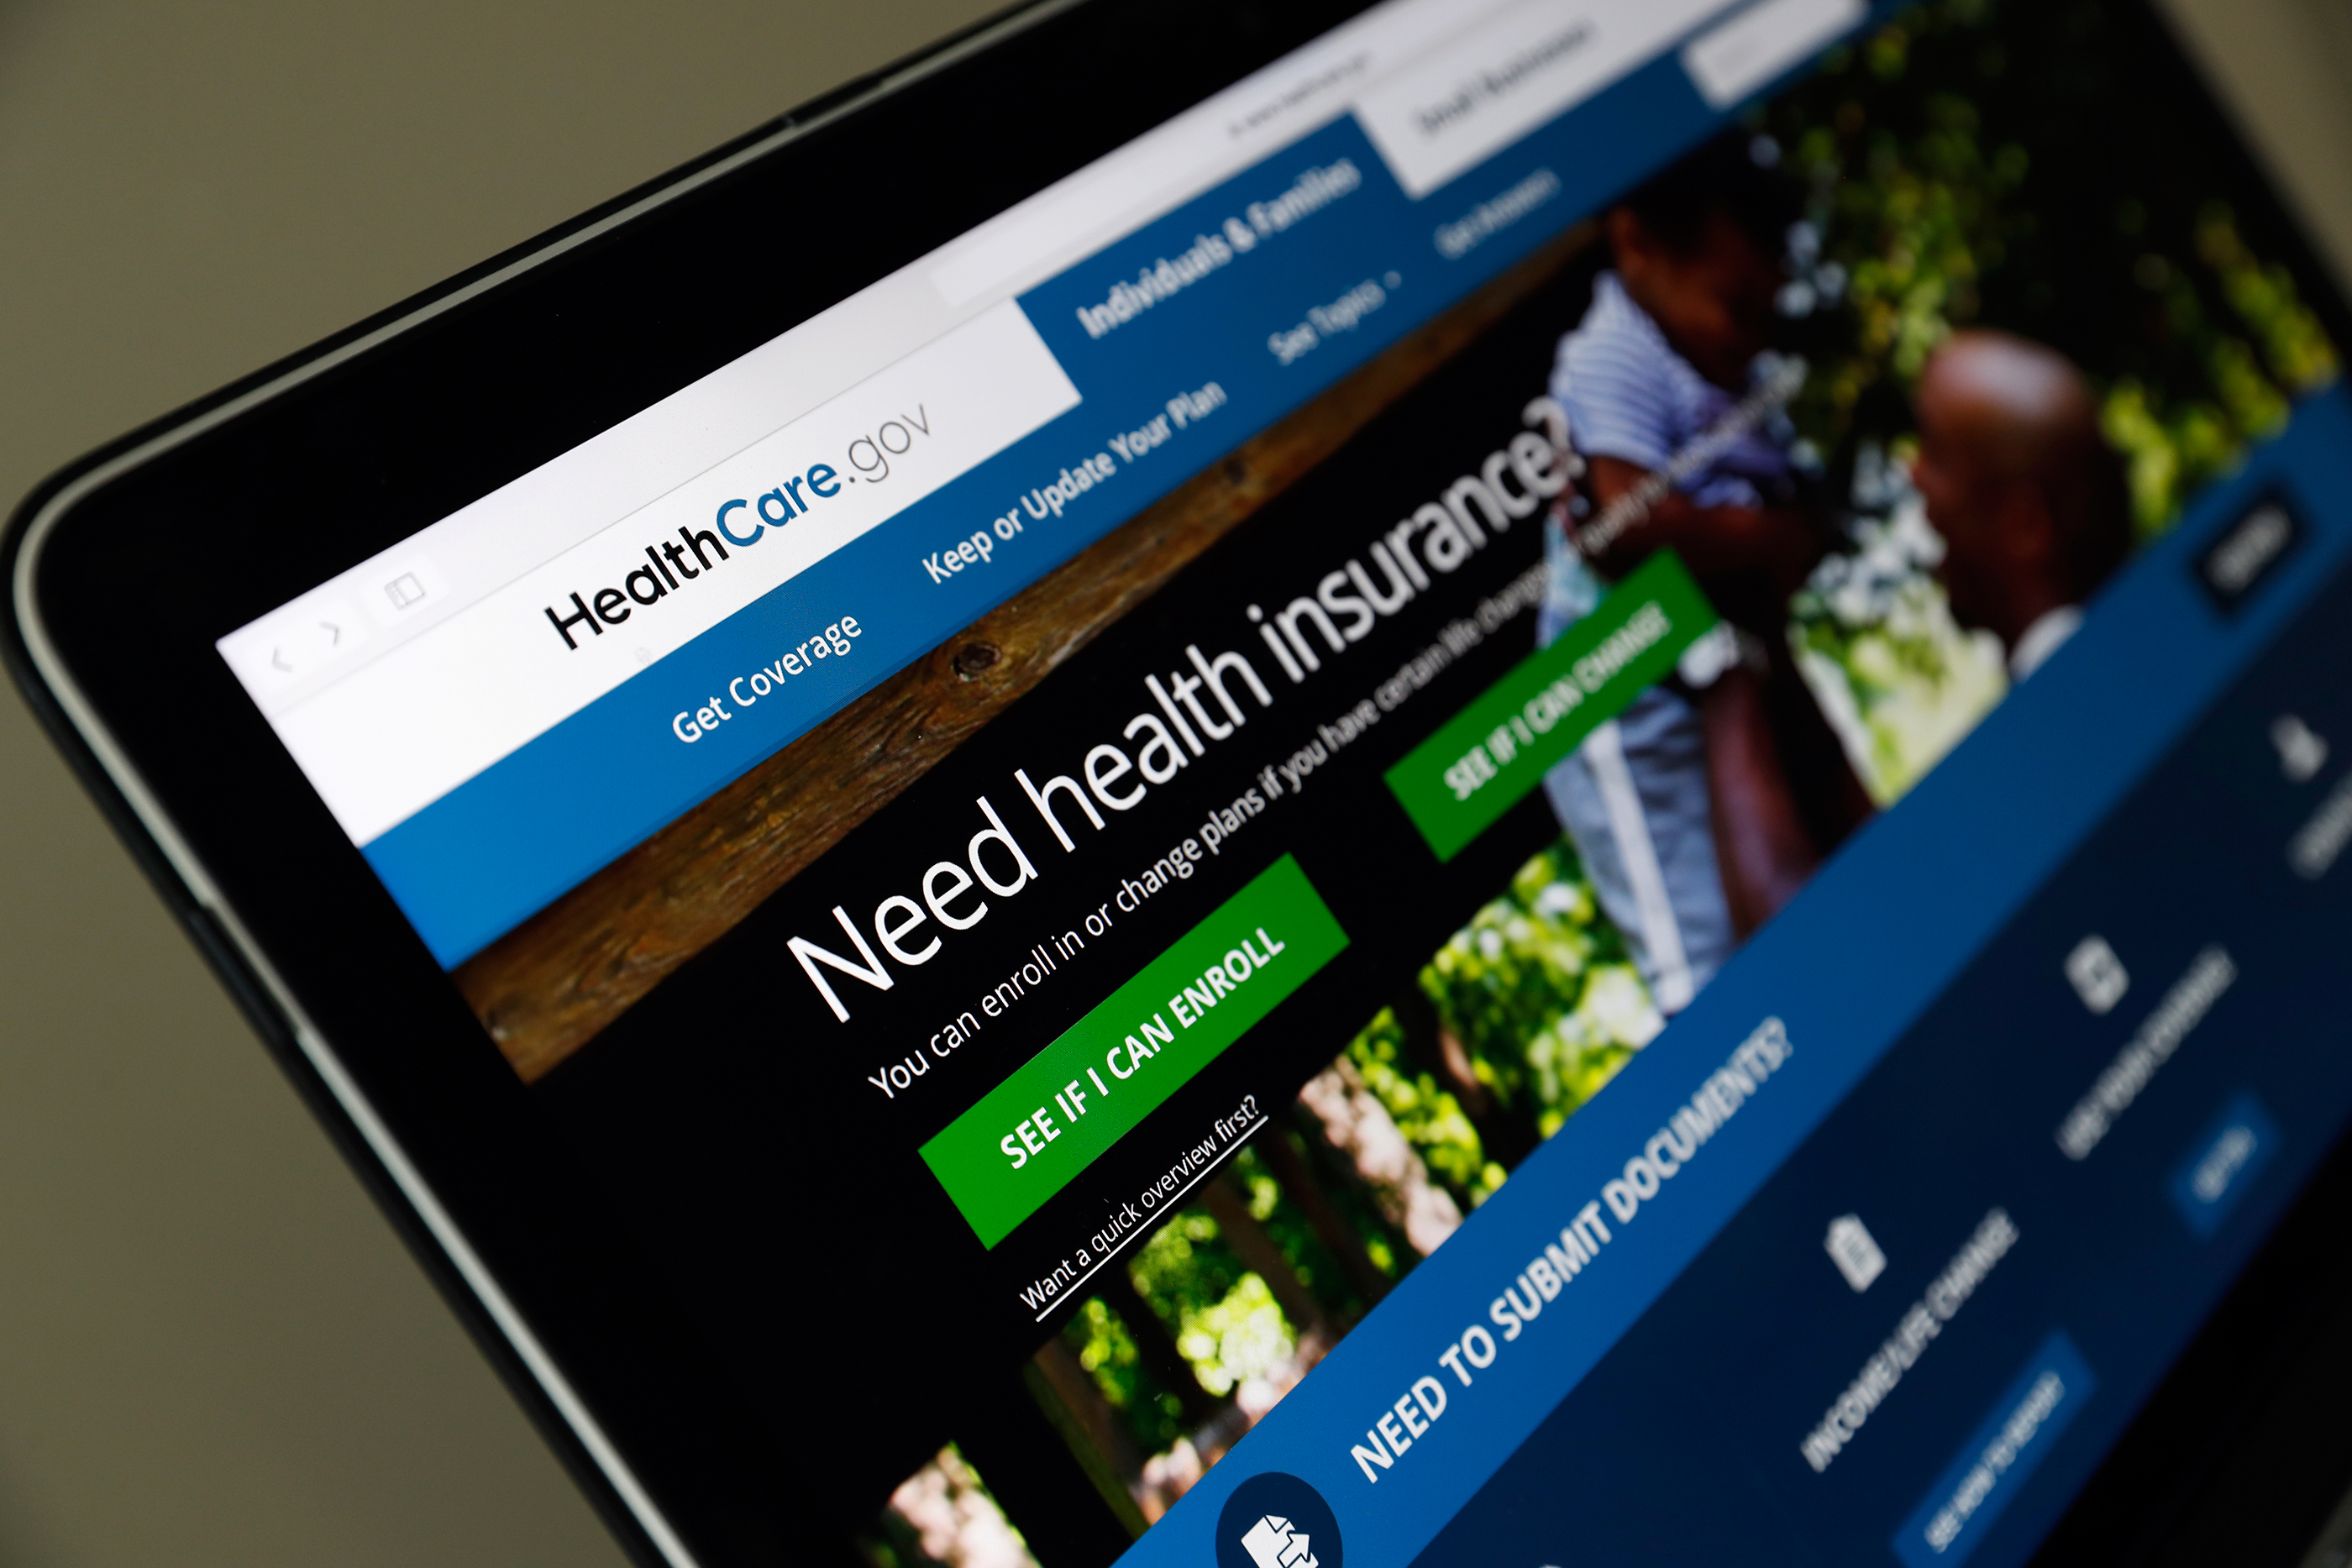 In this May 18, 2017 file photo, the Healthcare.gov website is seen on a laptop computer, in Washington. Former Obama administration officials say they're launching a private campaign to encourage people to sign up for coverage next year under the Affordable Care Act. With the start of open enrollment just weeks away on Nov. 1, the Trump administration has slashed  Obamacare's  ad budget, as well as grants to outside organizations that are supposed to help consumers sign up.